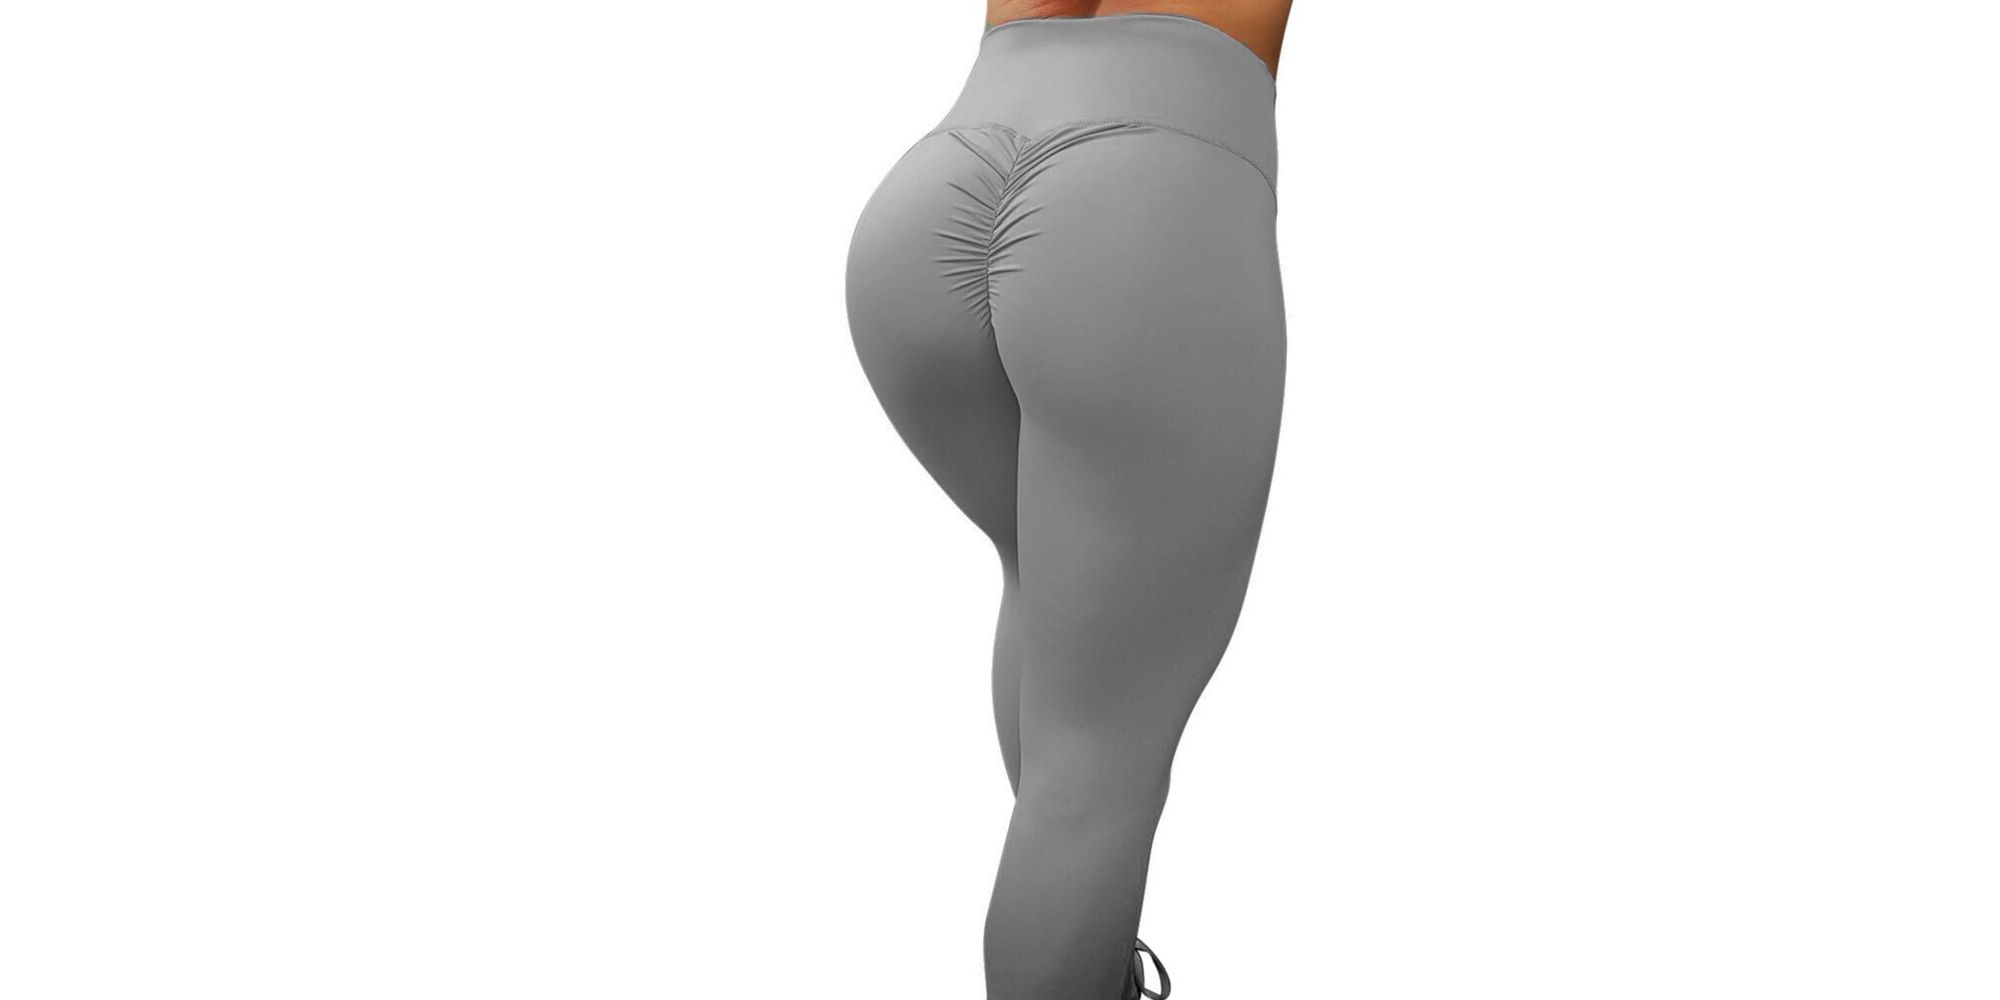 Sexy ass leggings pic gallery